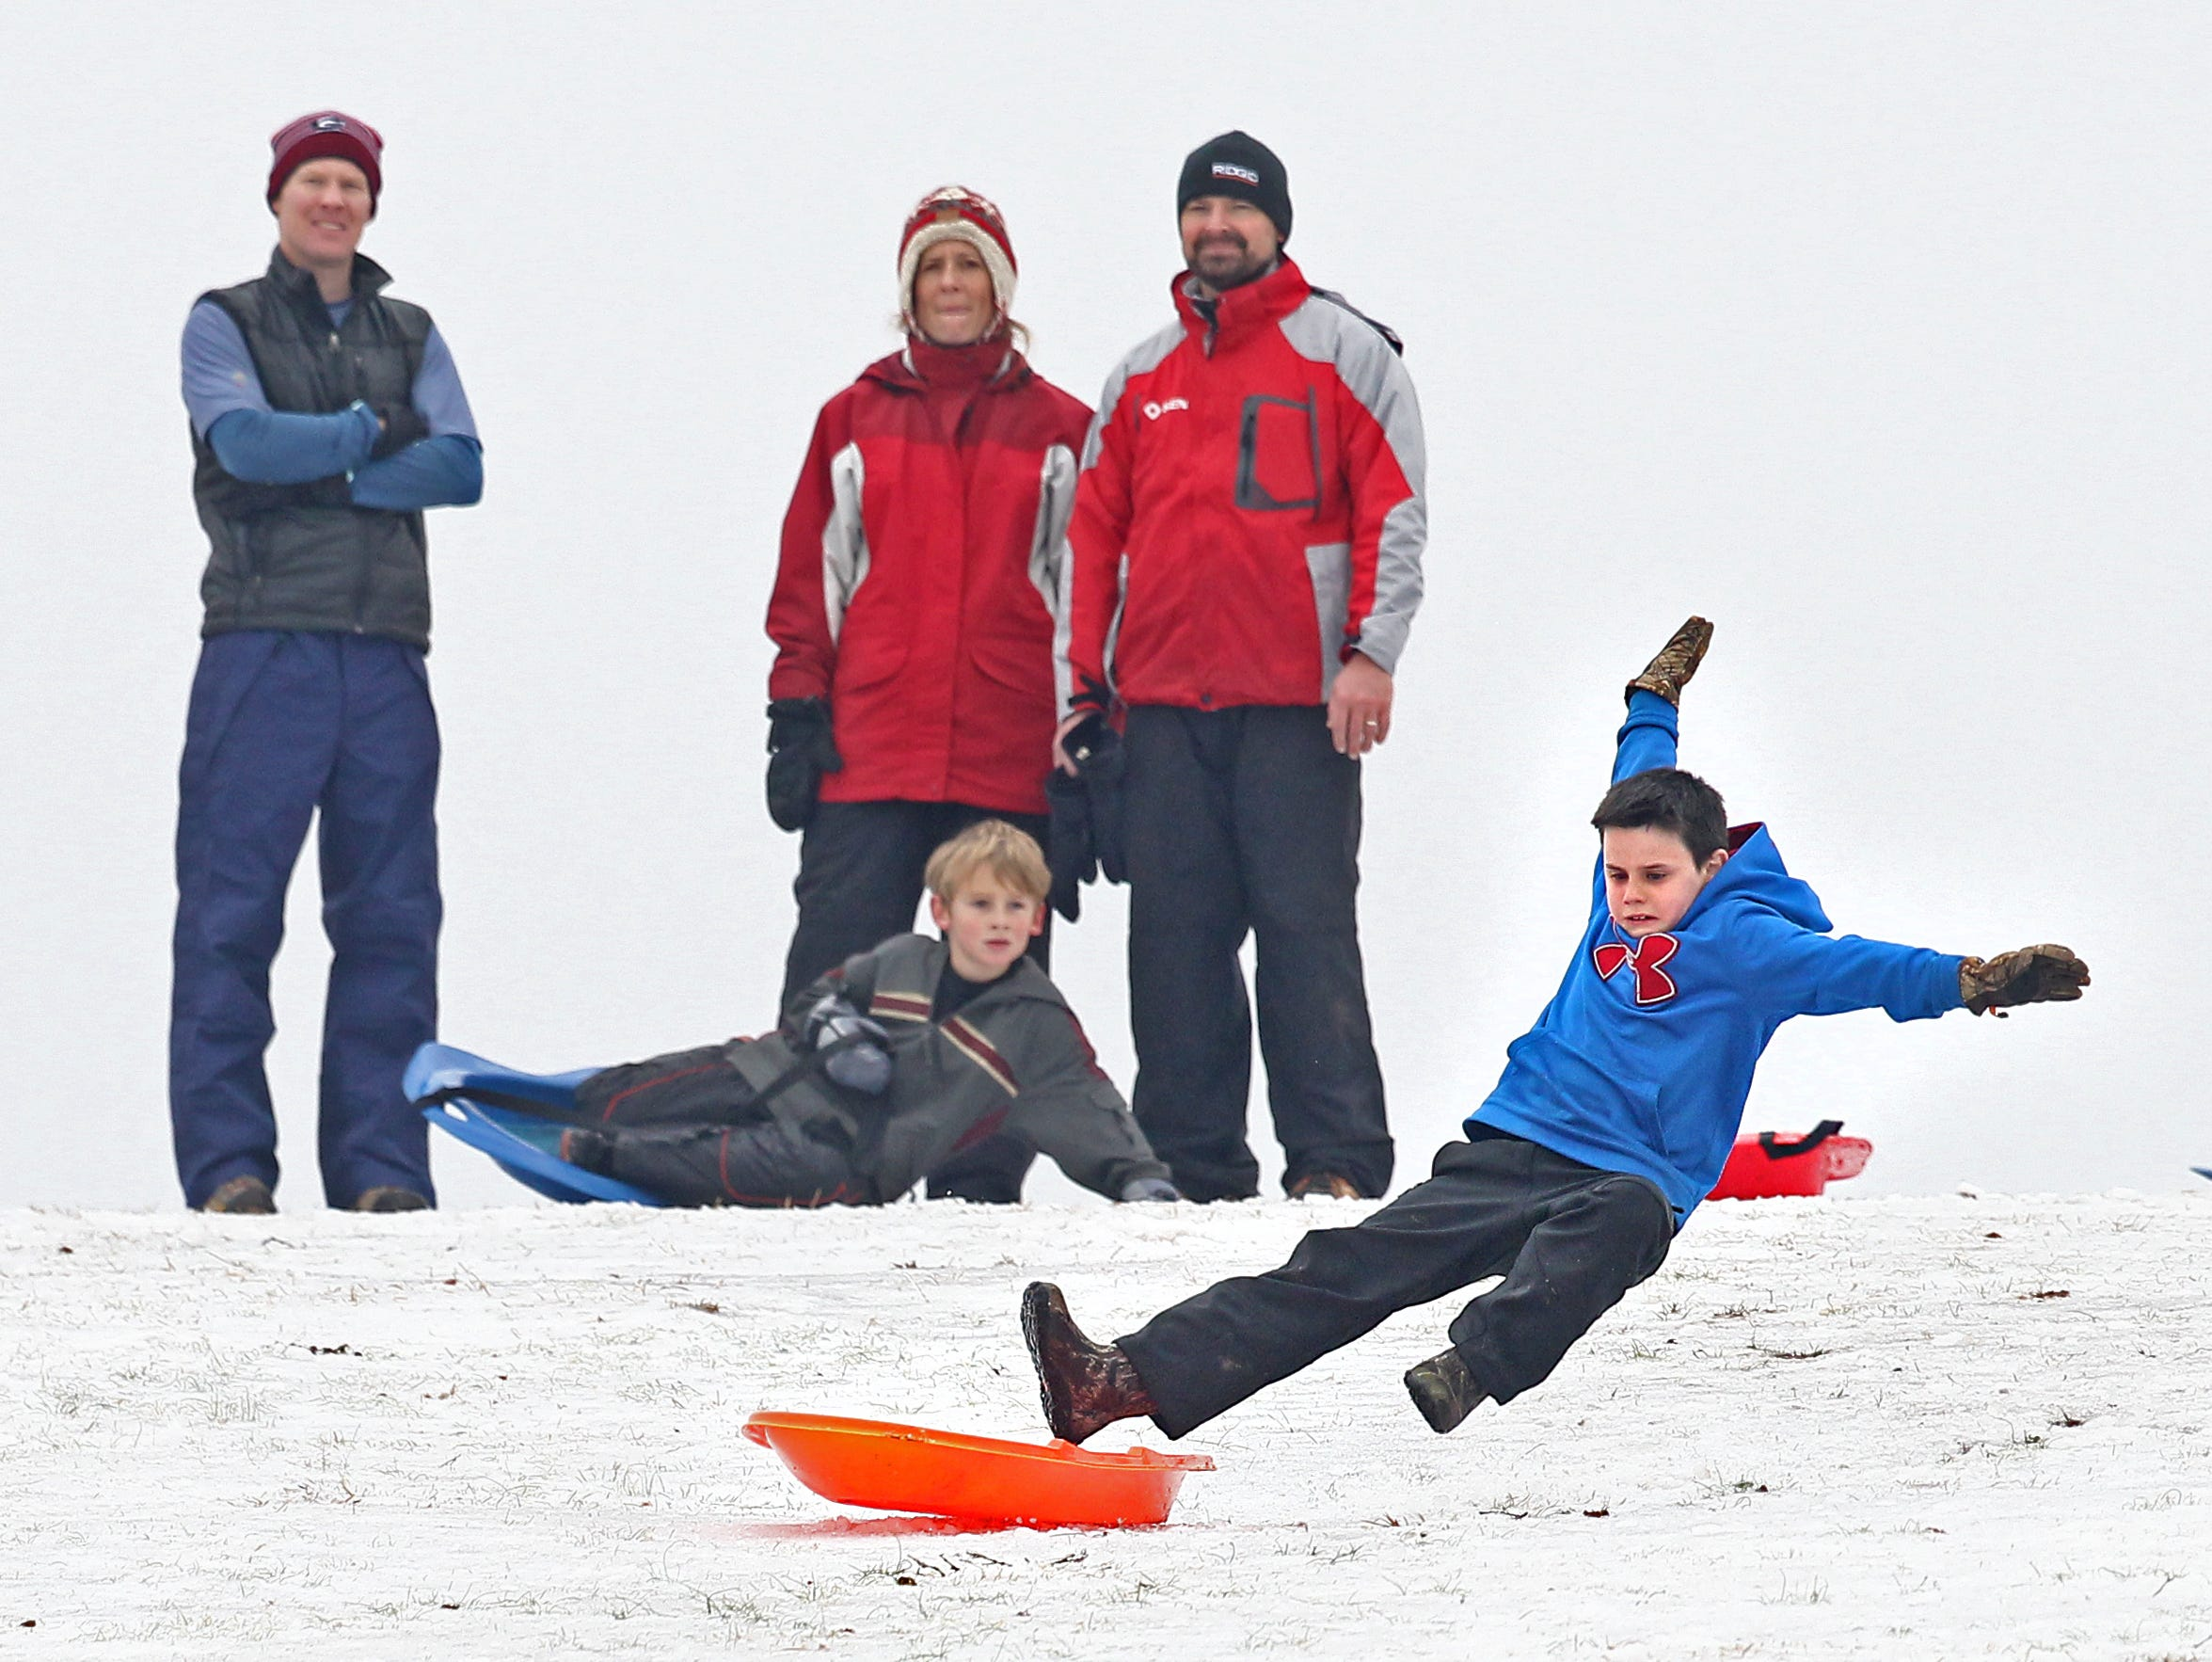 Cannon Tyson, right, of Pendleton, slips after sliding down part of a snow-covered Kite Hill off of U.S. 76 in Clemson. The semi-soft snow made for a soft landing, but slick enough to get some good movement down the hill in 2015.